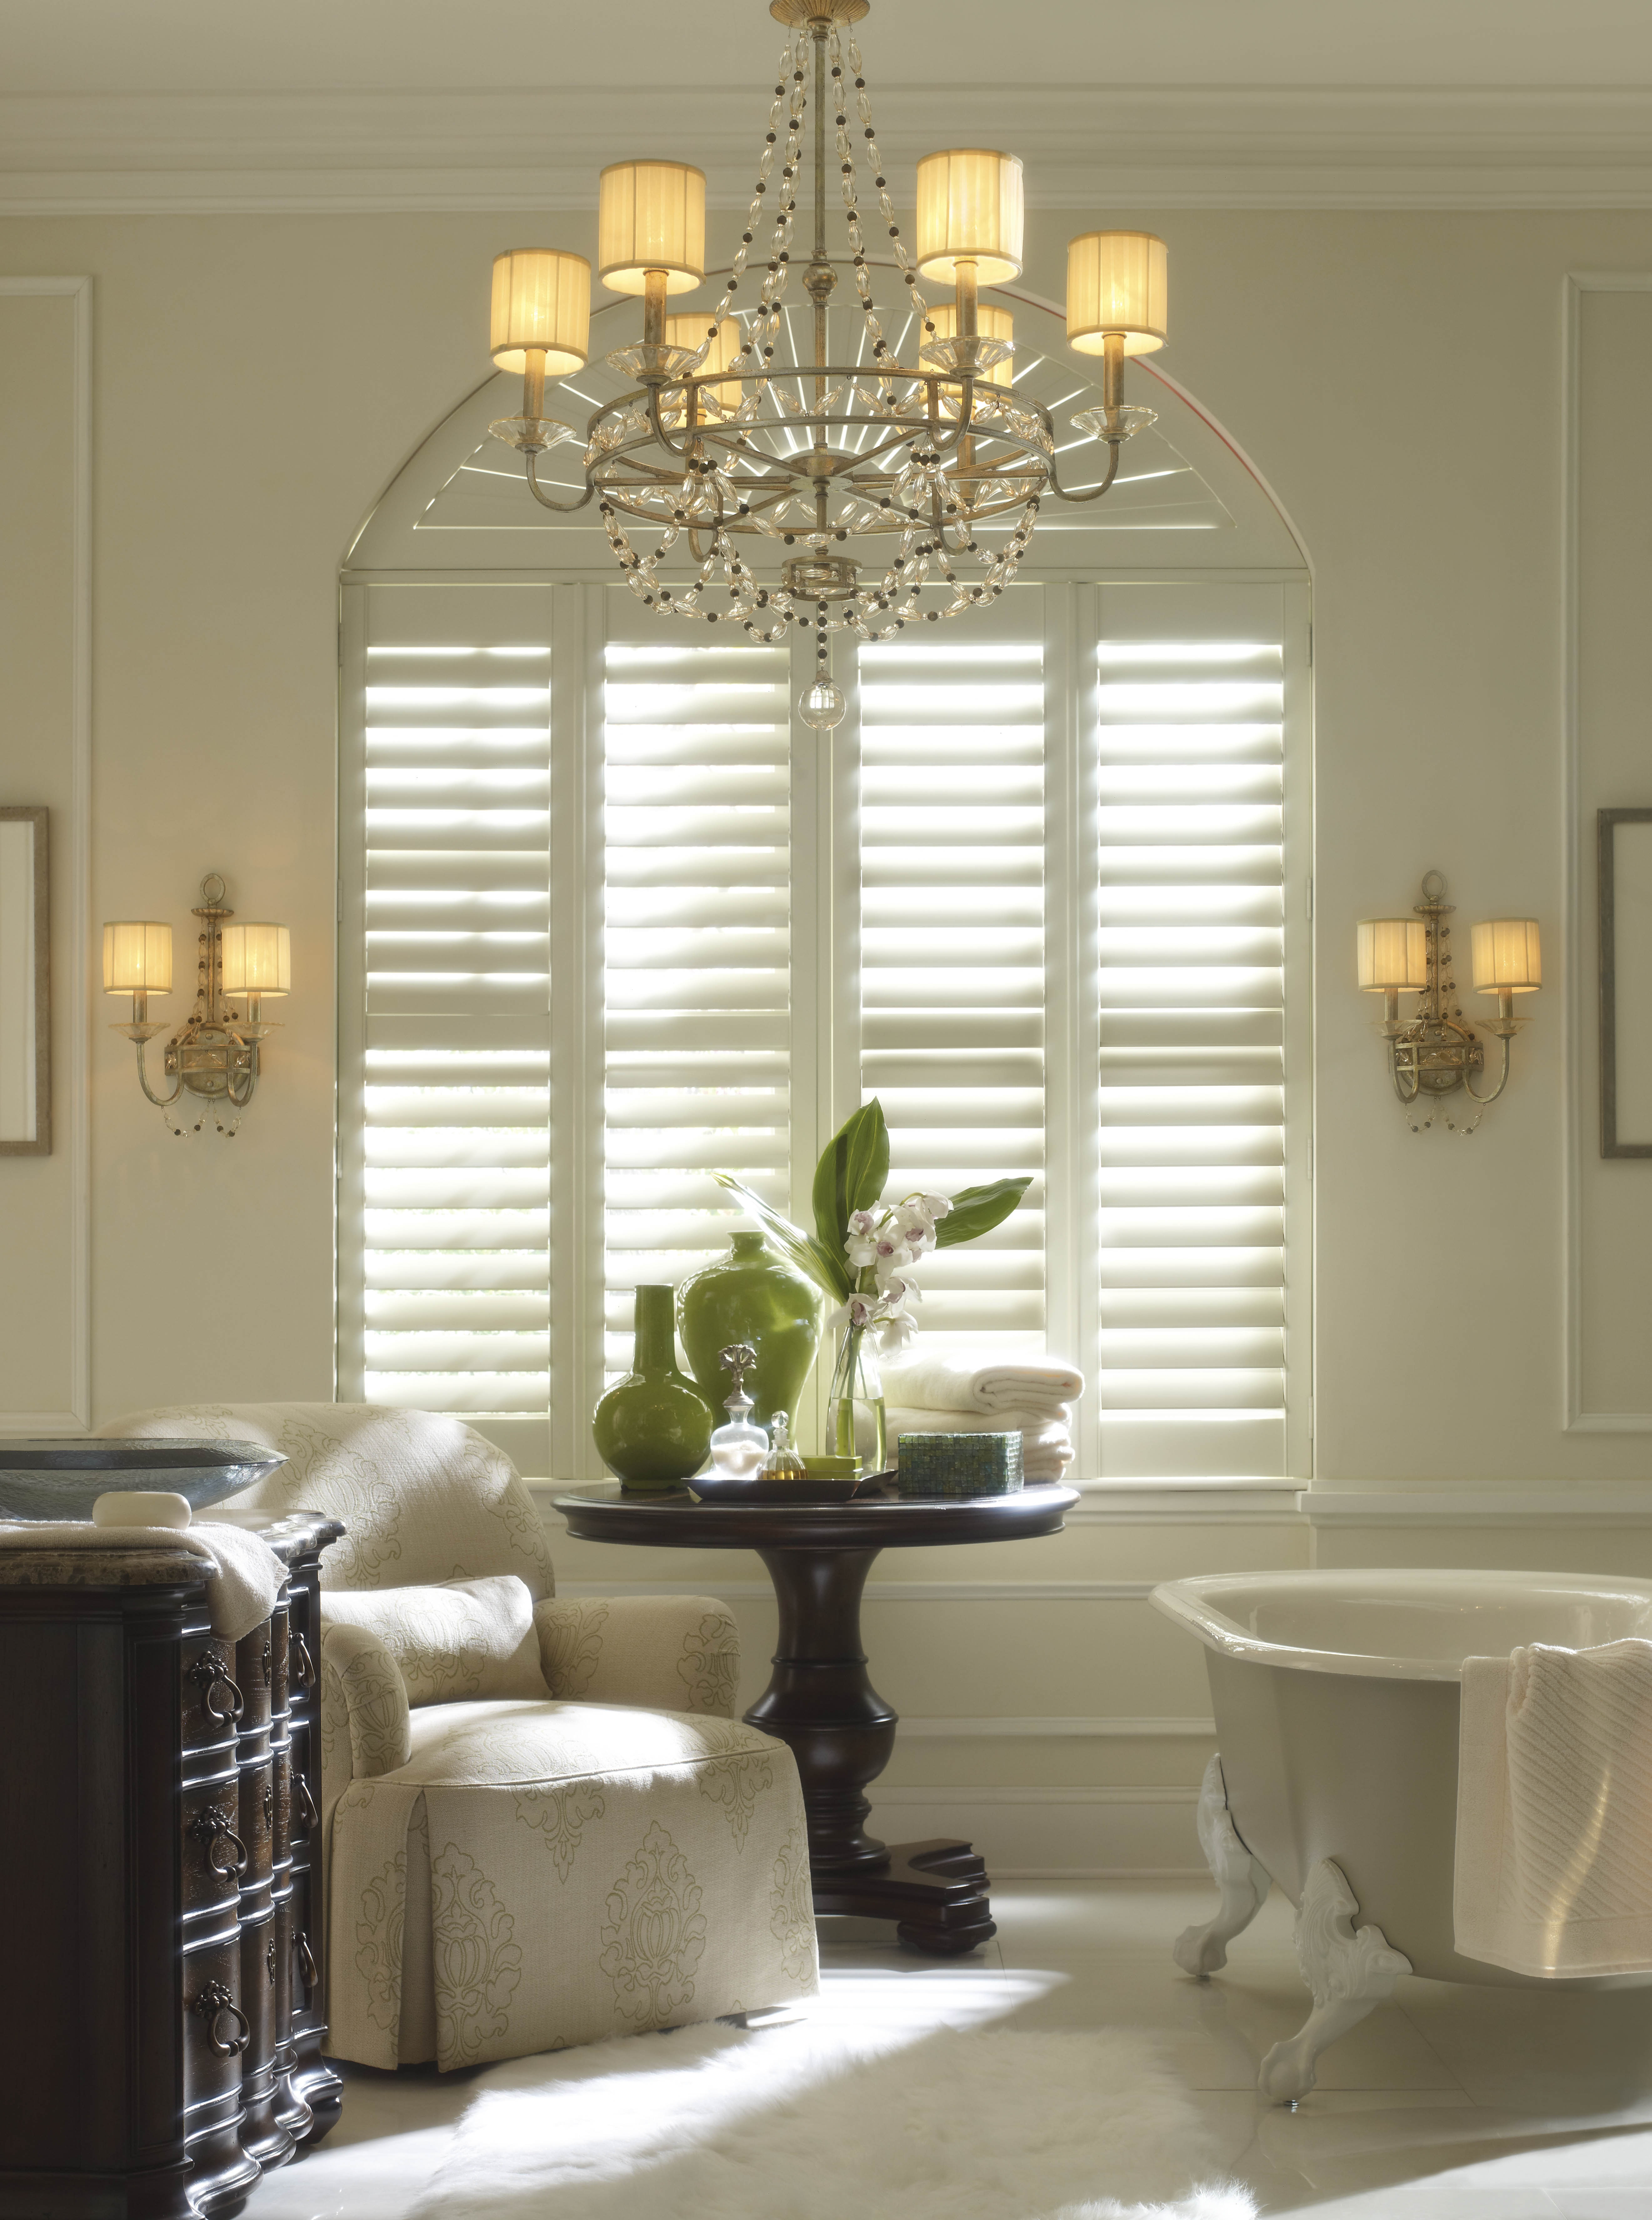 Featured Image of Bathroom Lighting With Matching Chandeliers